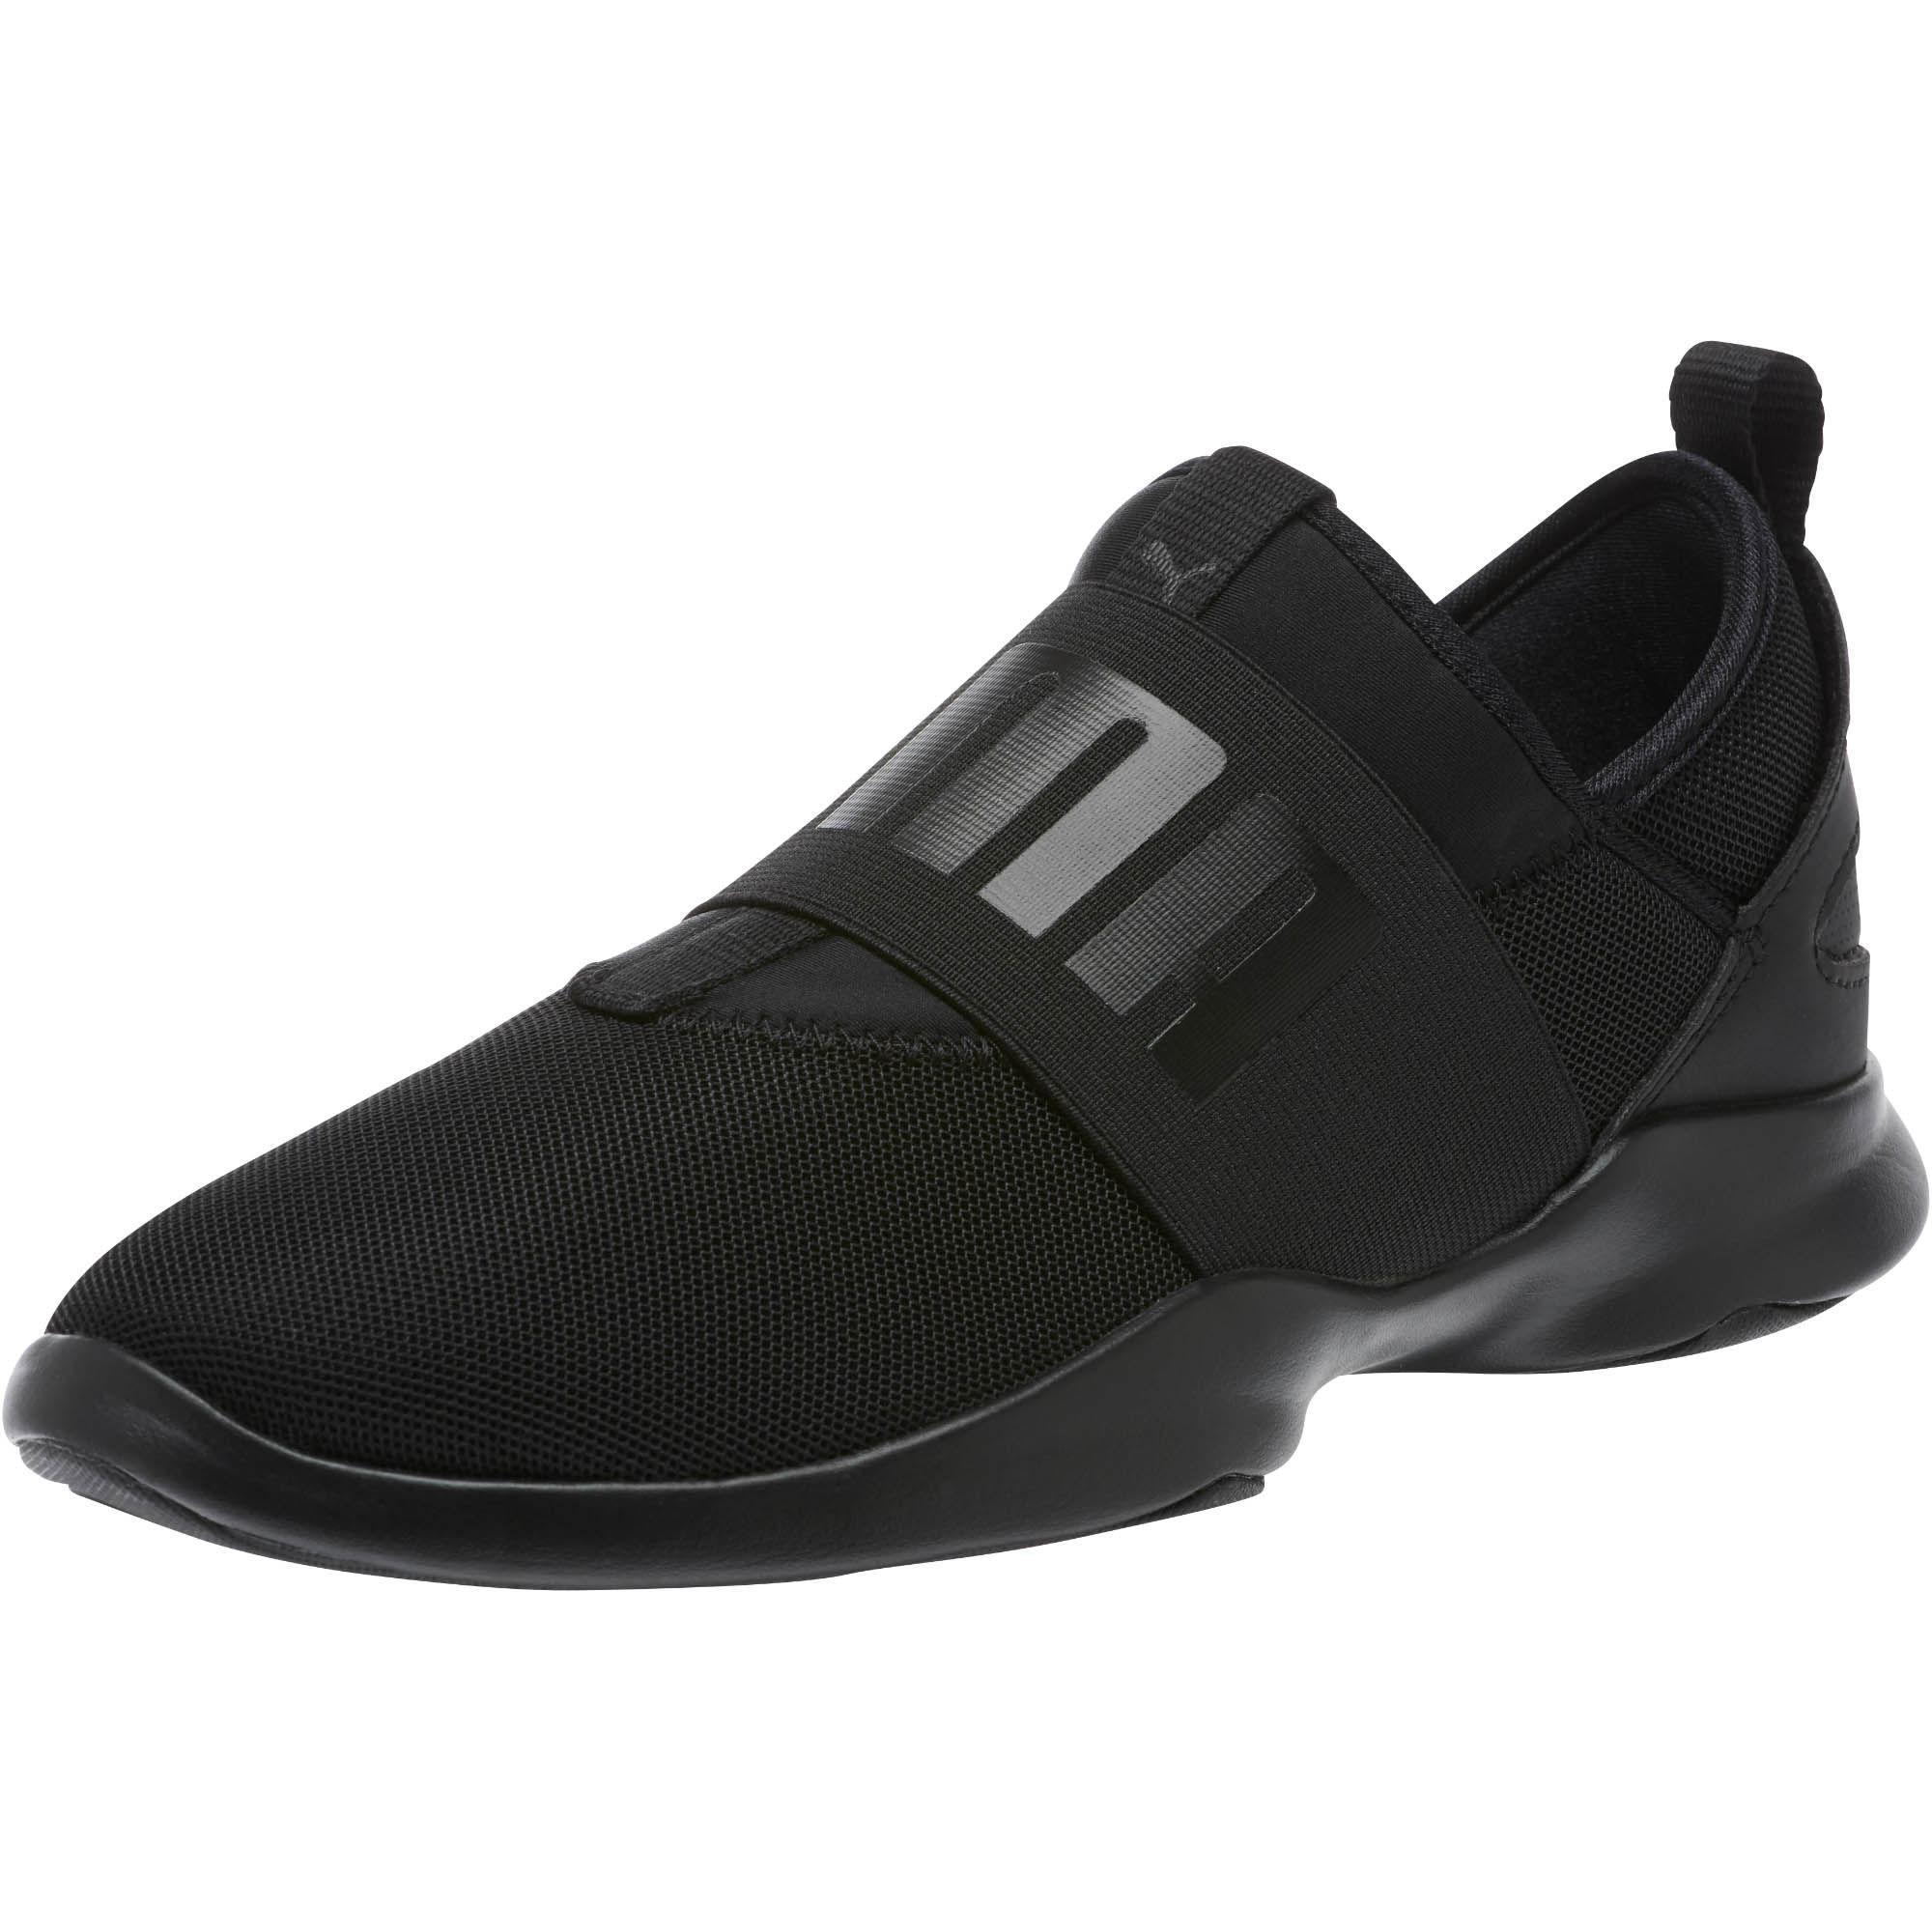 Lyst - PUMA Dare Women s Slip-on Sneakers in Black ba1b76a65e